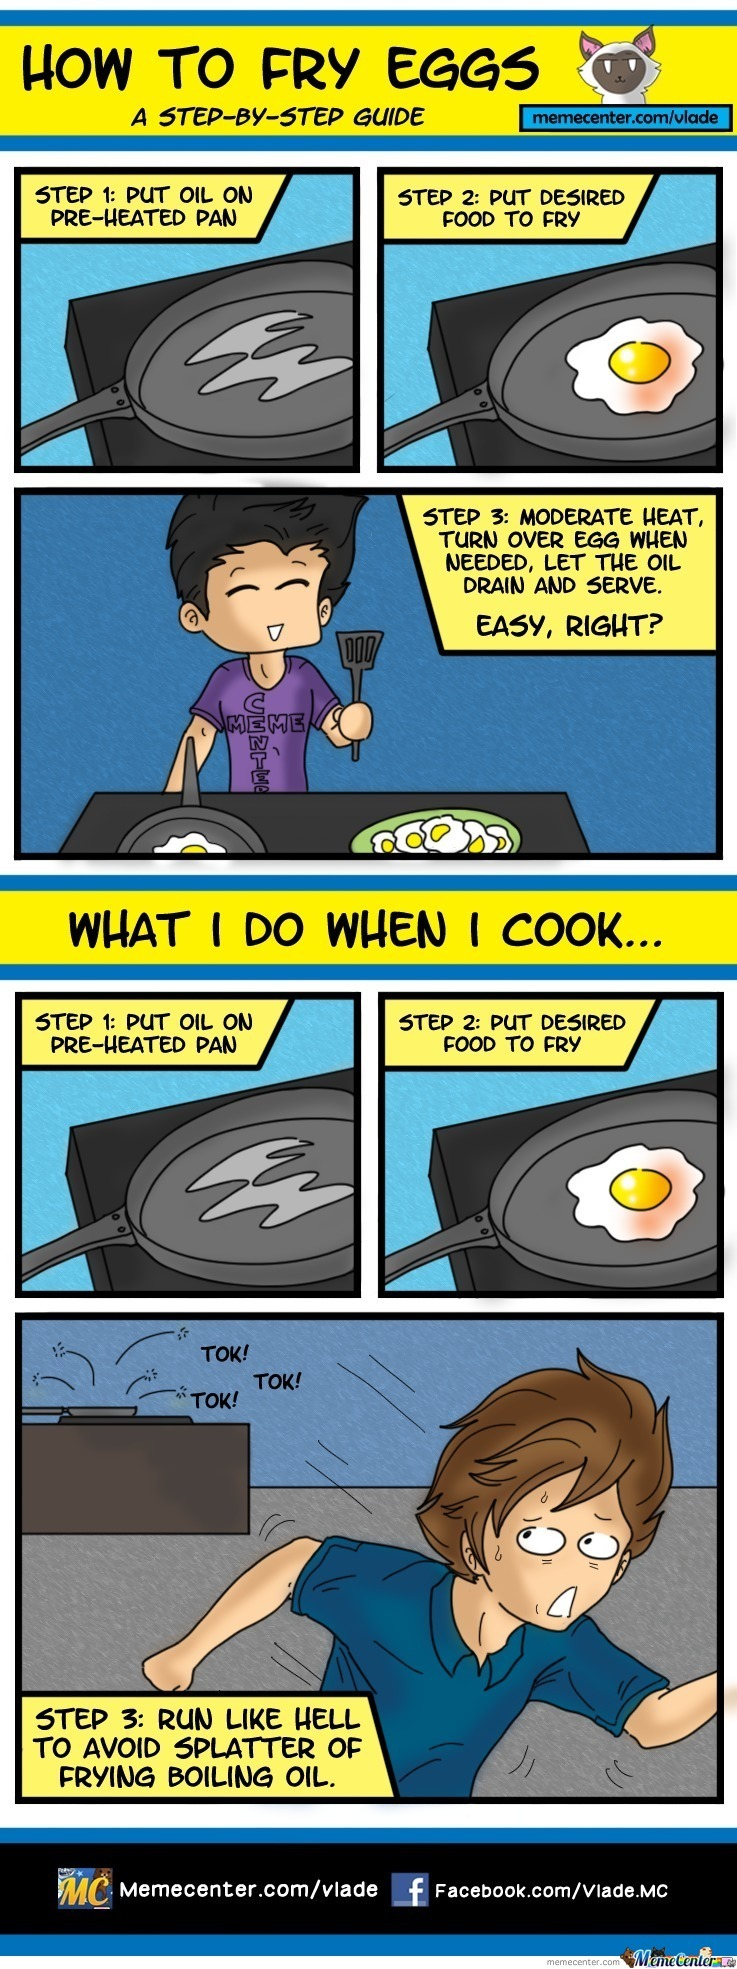 How To Fry Eggs!